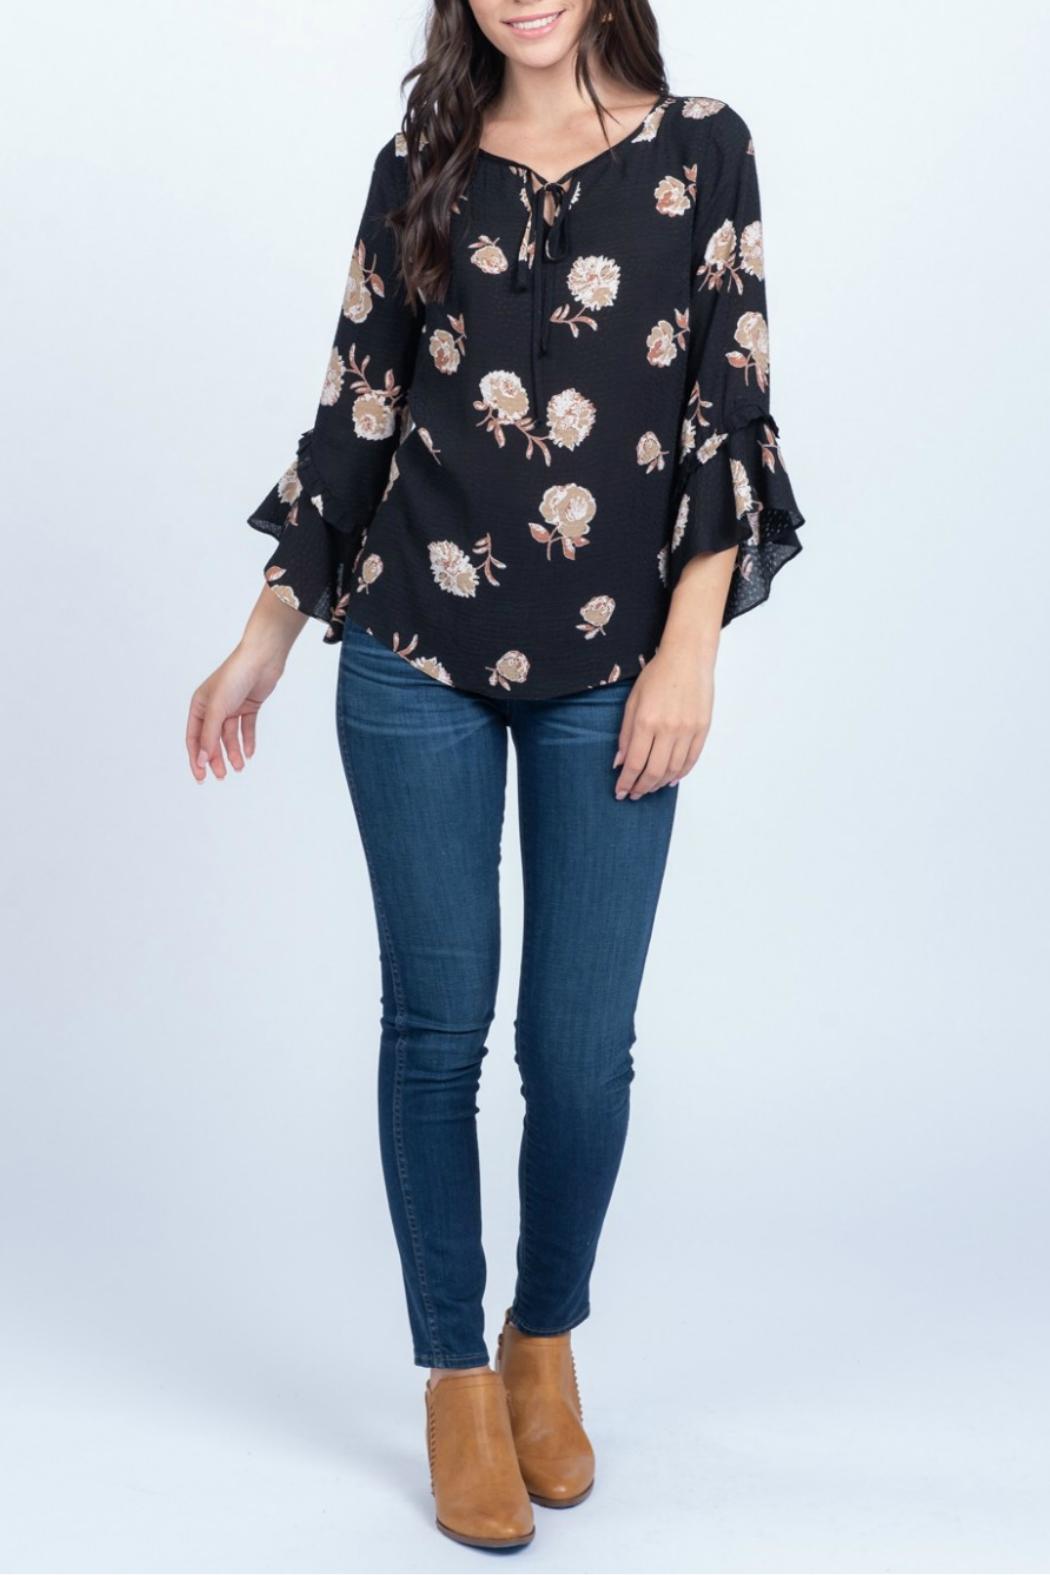 Everly Printed floral woven ruffle sleeve top - Main Image